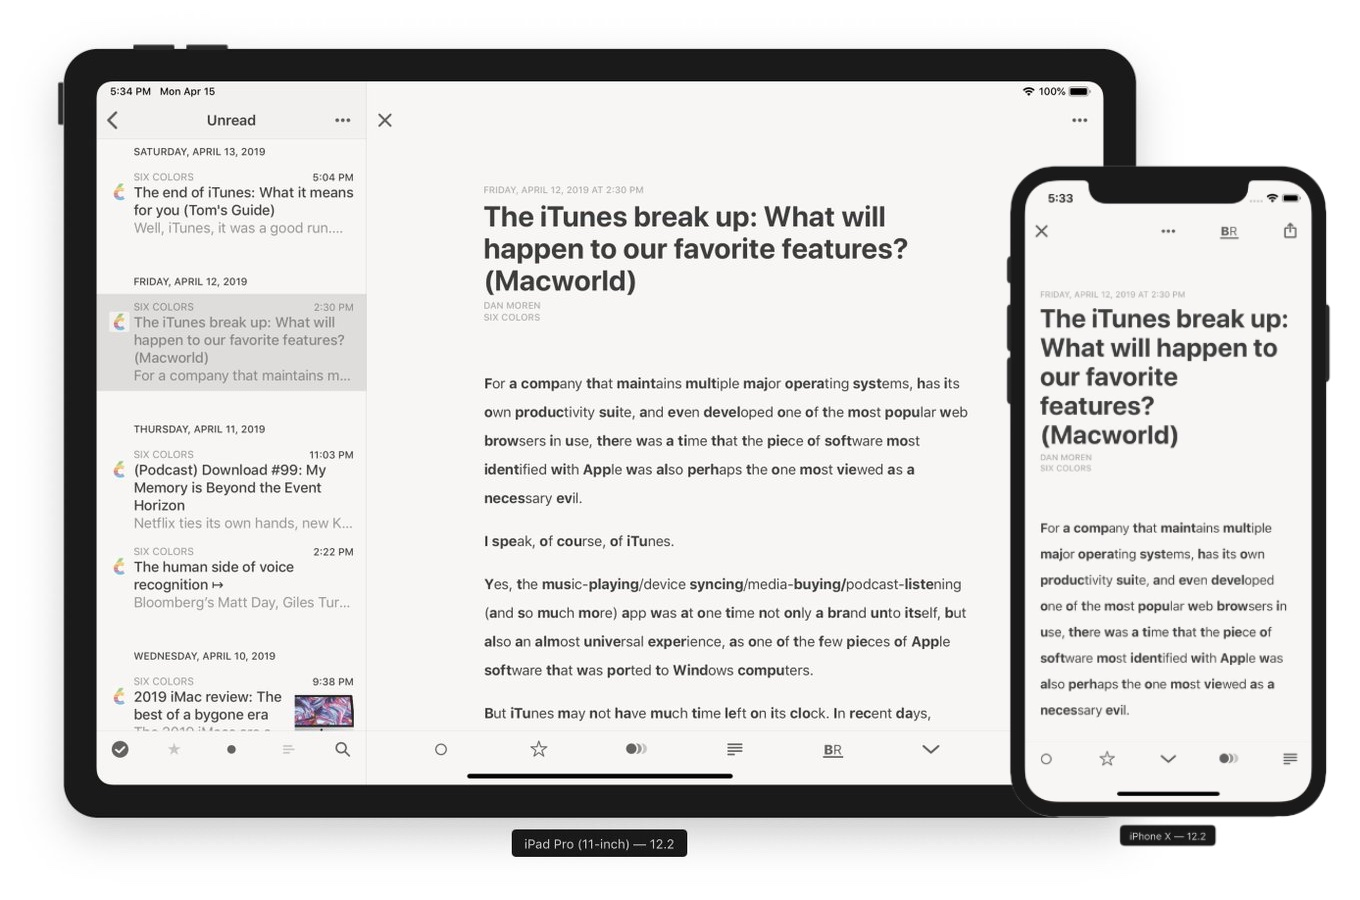 Reeder v4 for iOS Beta 11